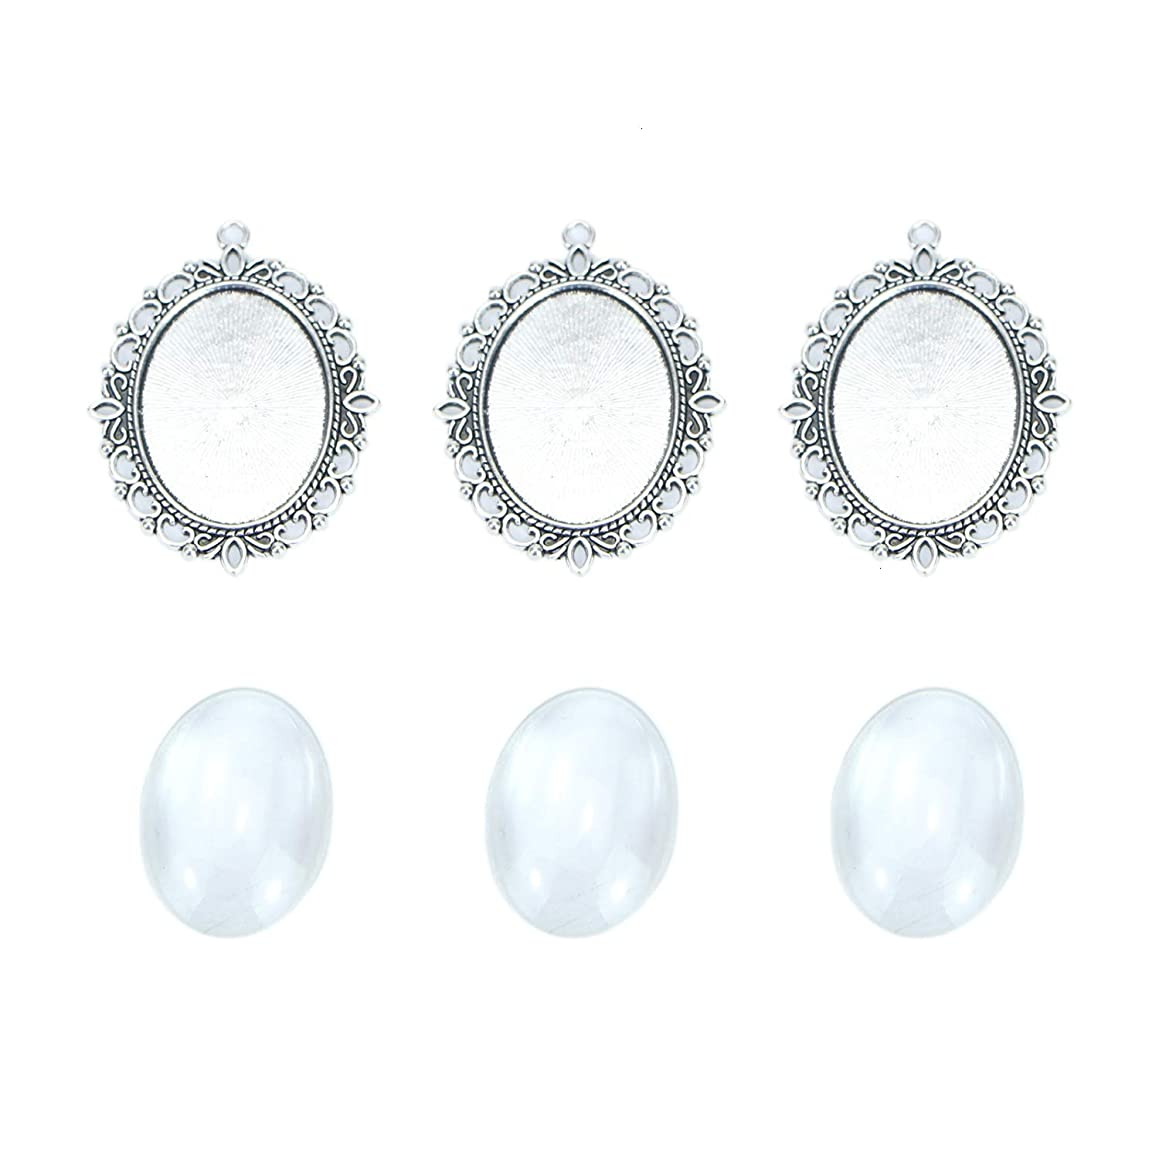 Monrocco 10Set 40x30mm Vintage Tibetan Style Alloy Oval Pendant Cabochon Bezel Settings with Clear Glass Dome Tile Jewelry Making DIY Findings